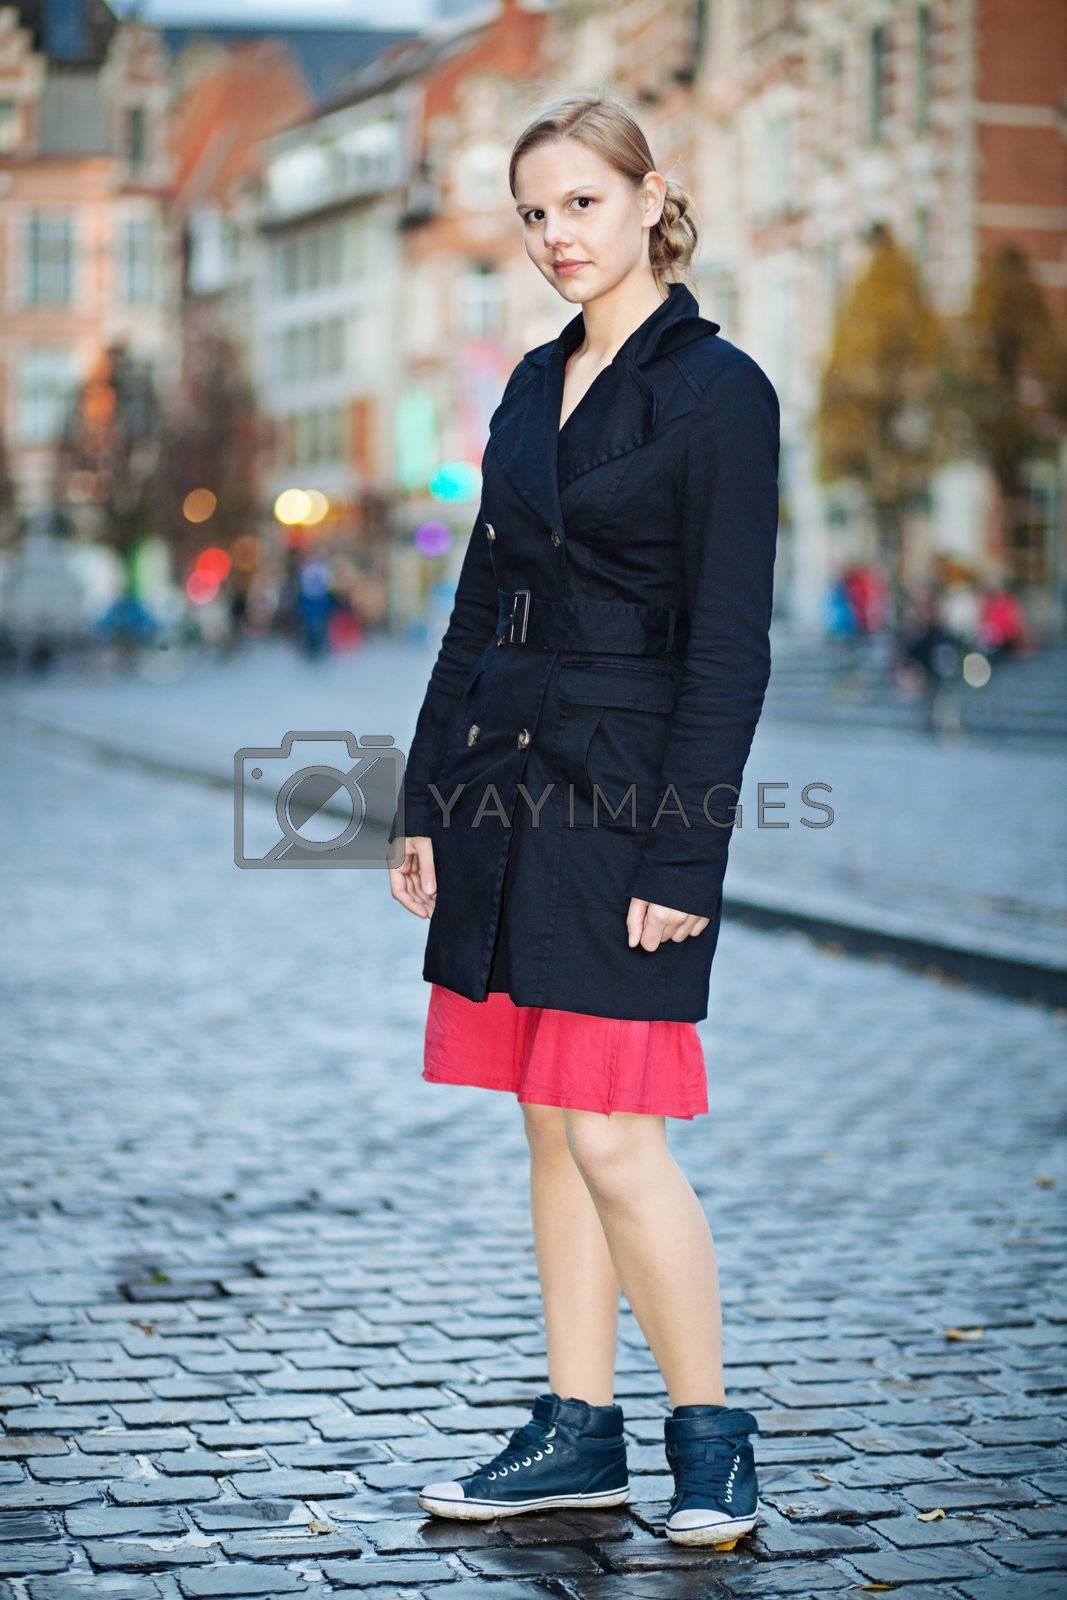 Pretty young woman standing on an old city square in twilight